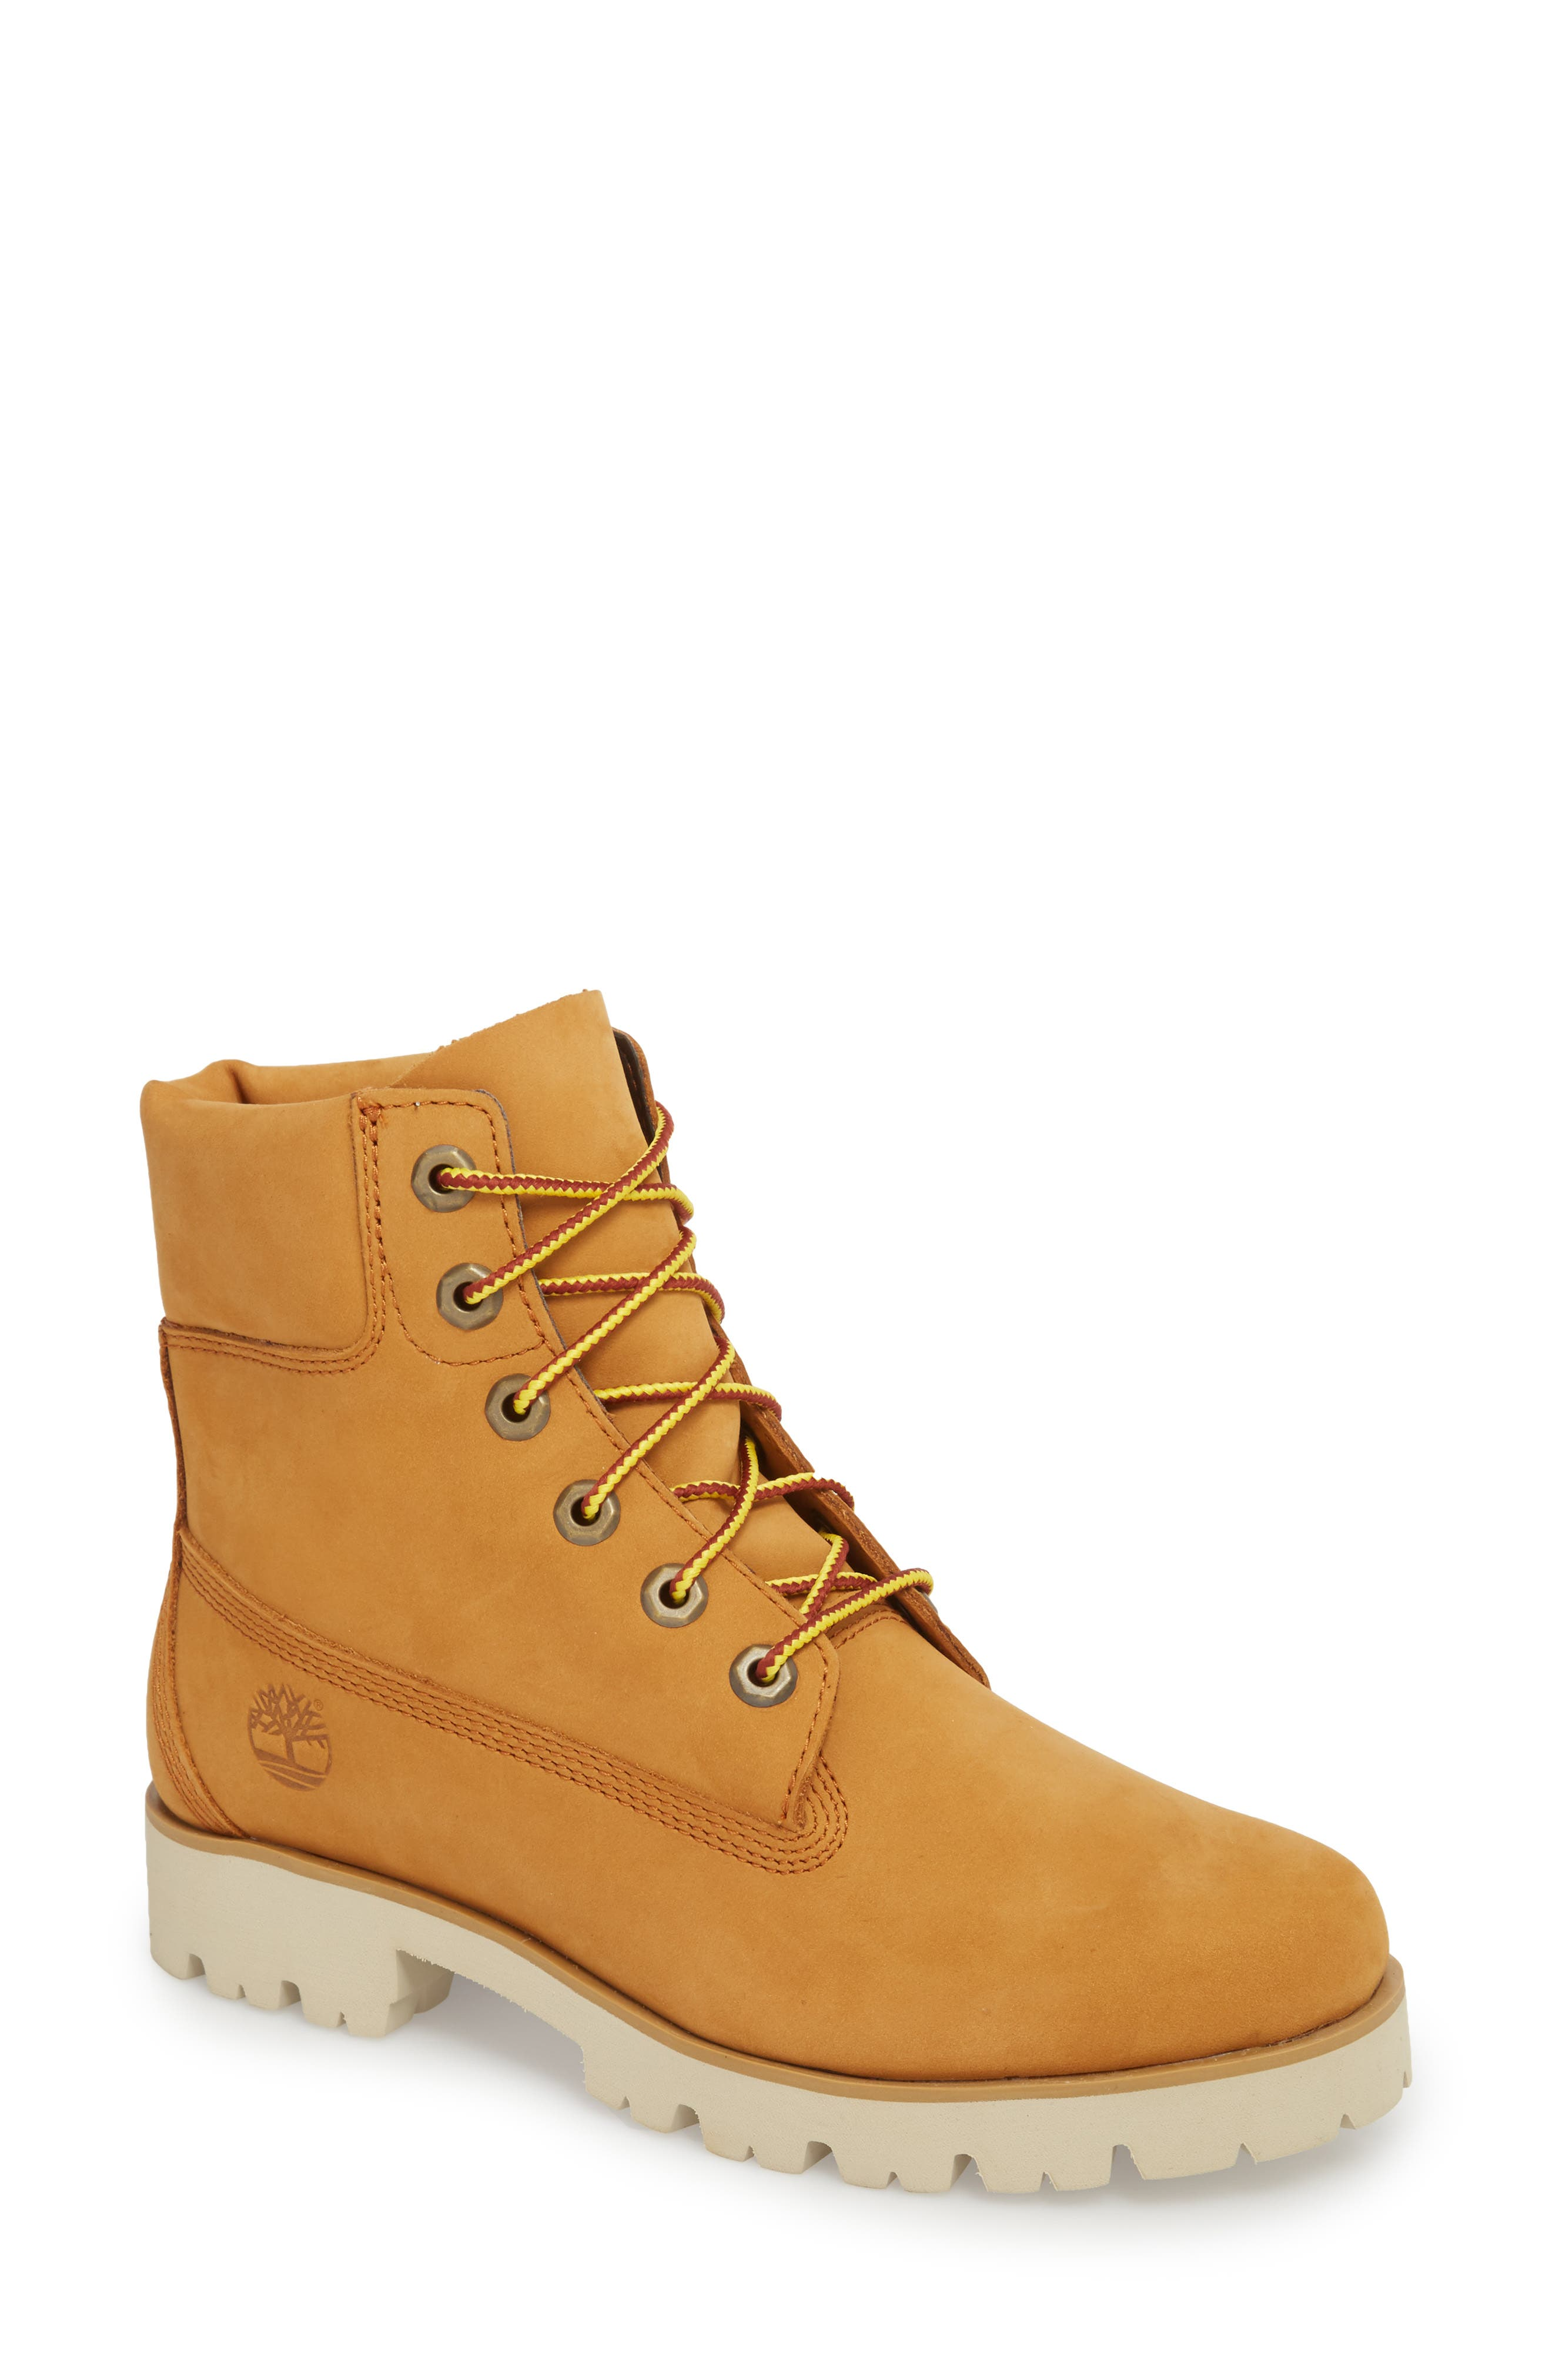 6-Inch Heritage Lite Water-Resistant Boot,                         Main,                         color, Wheat Nubuck